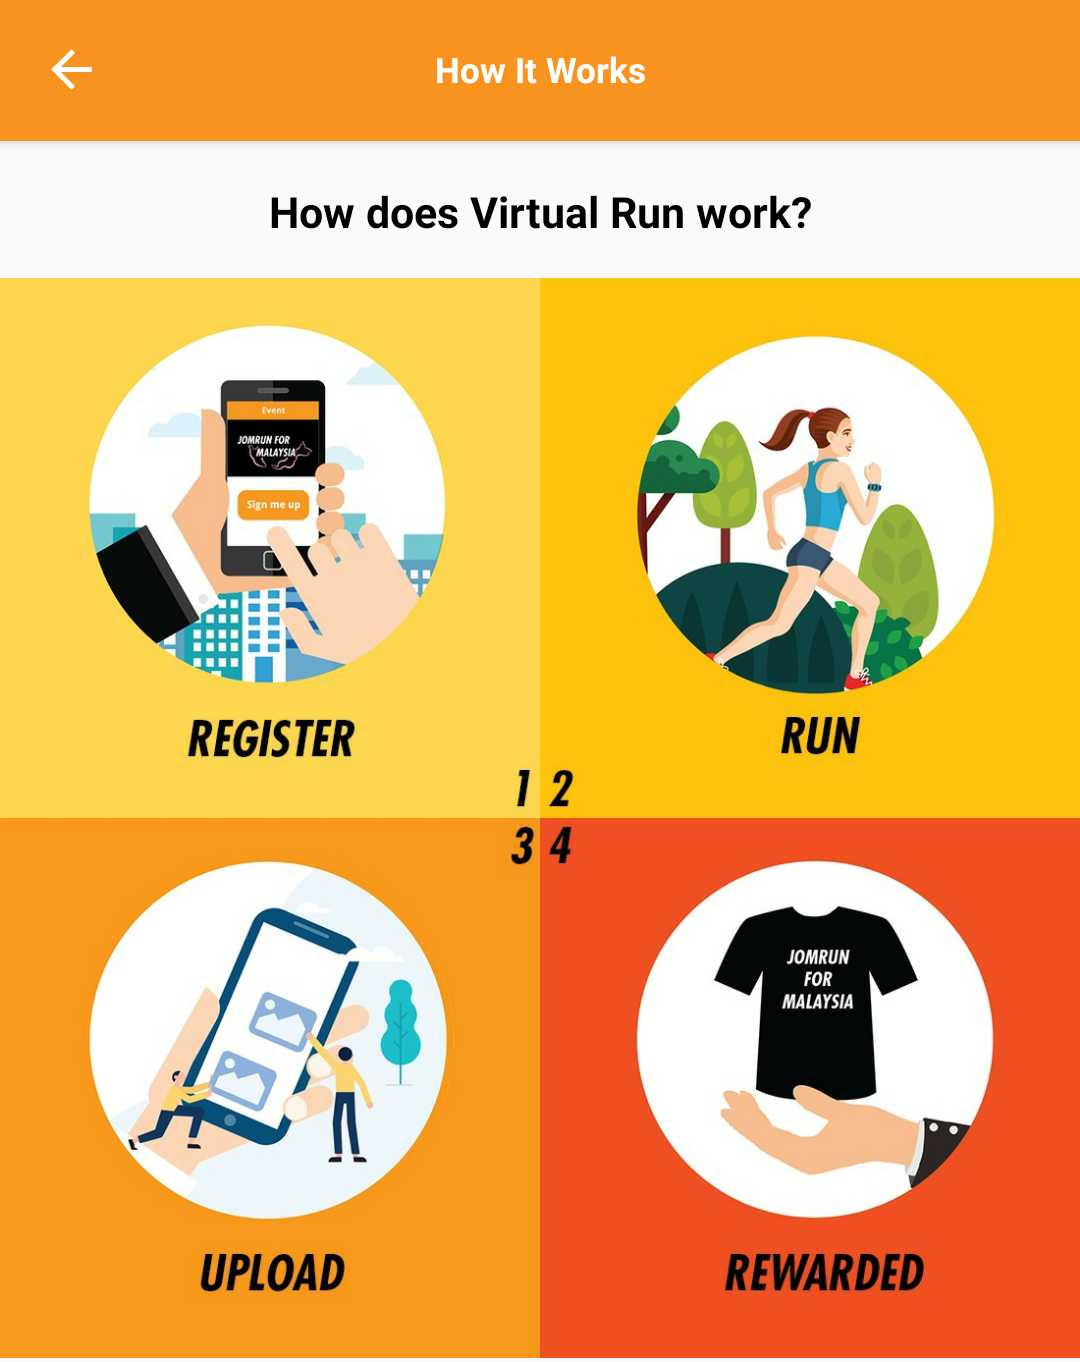 Take Part in This 5K Run From ANYWHERE in M'sia Where ALL Proceeds Will Go to Pasir Gudang Victims - WORLD OF BUZZ